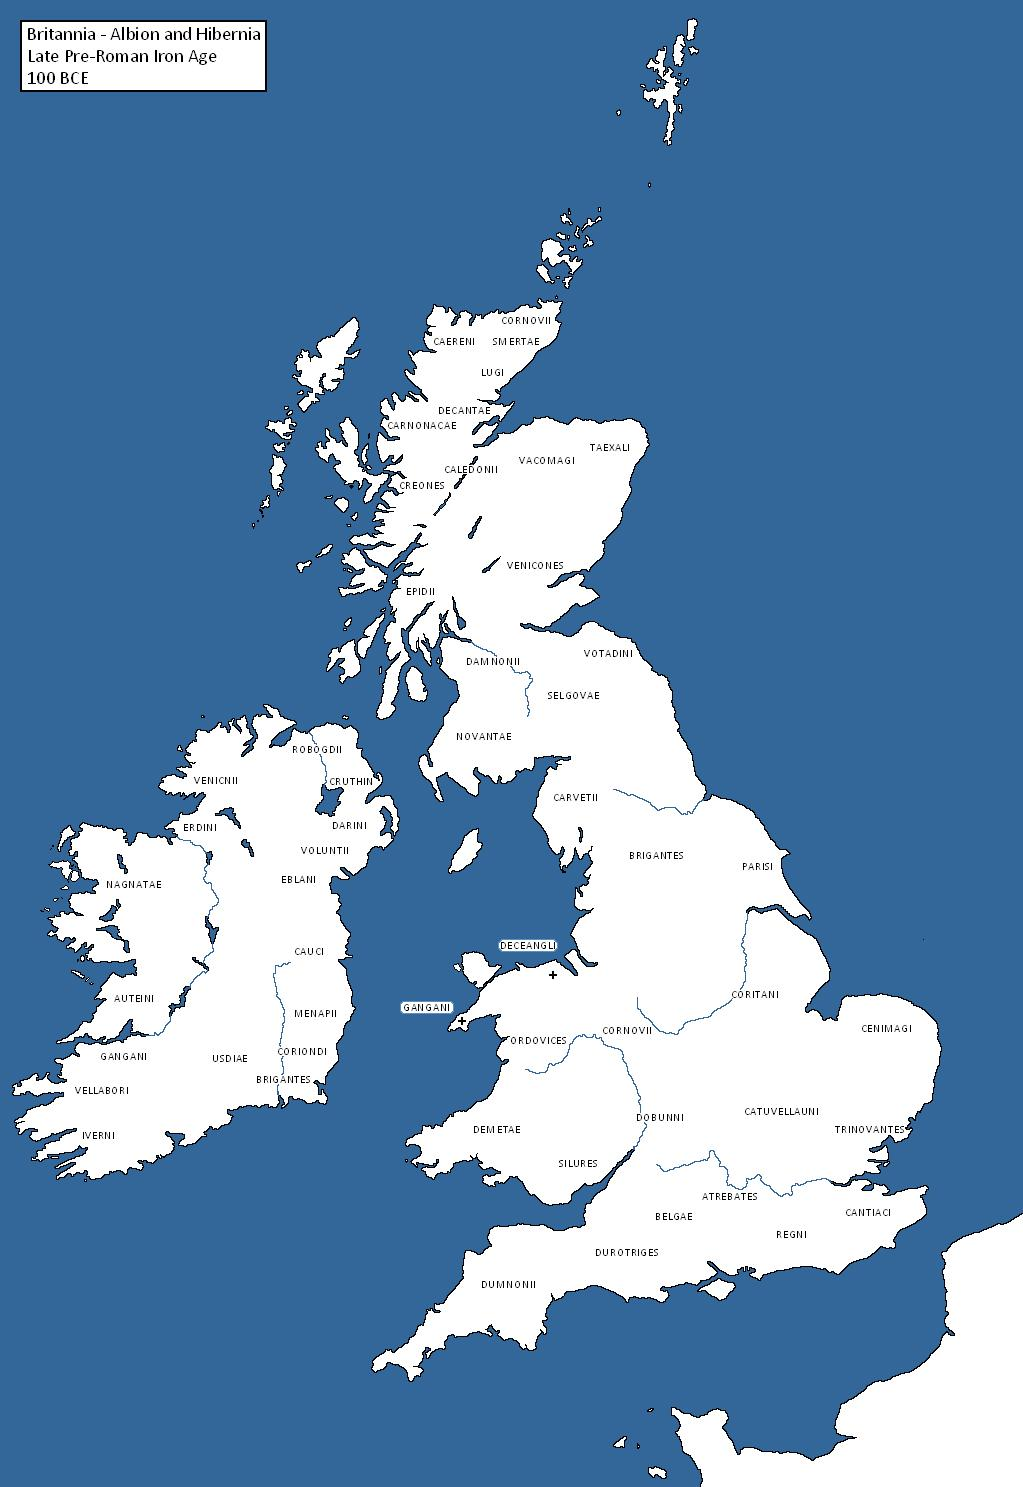 Britain And Ireland Map.File Map Peoples Of Britain And Ireland 100bce Jpg Wikimedia Commons